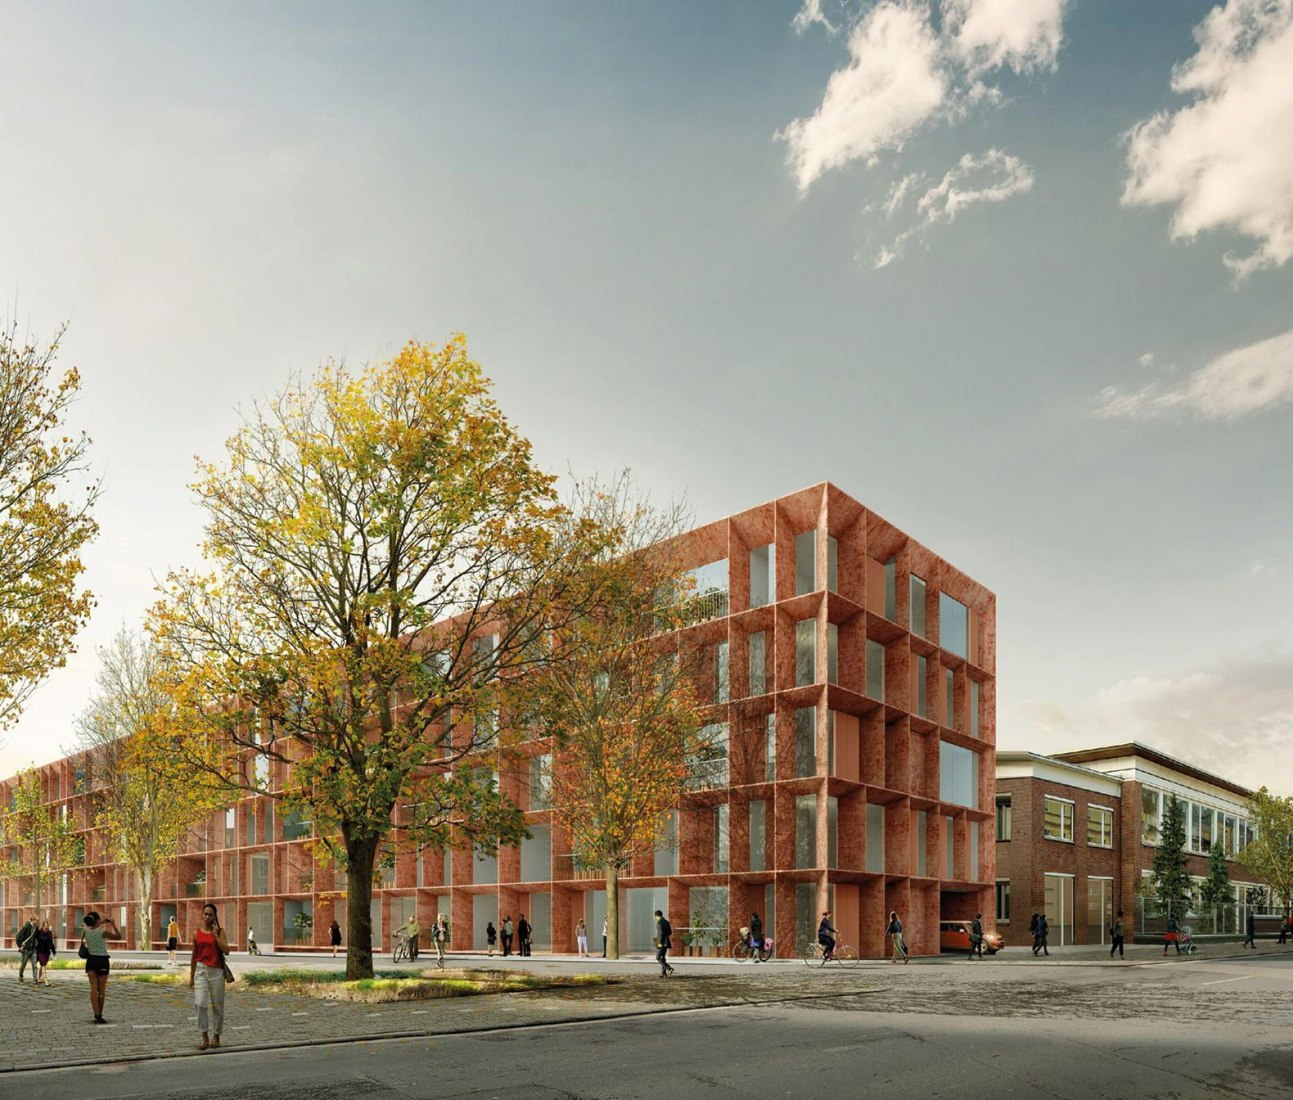 Rendering. Tor 2 - Clouth Areal complex by Nieto Sobejano Arquitectos